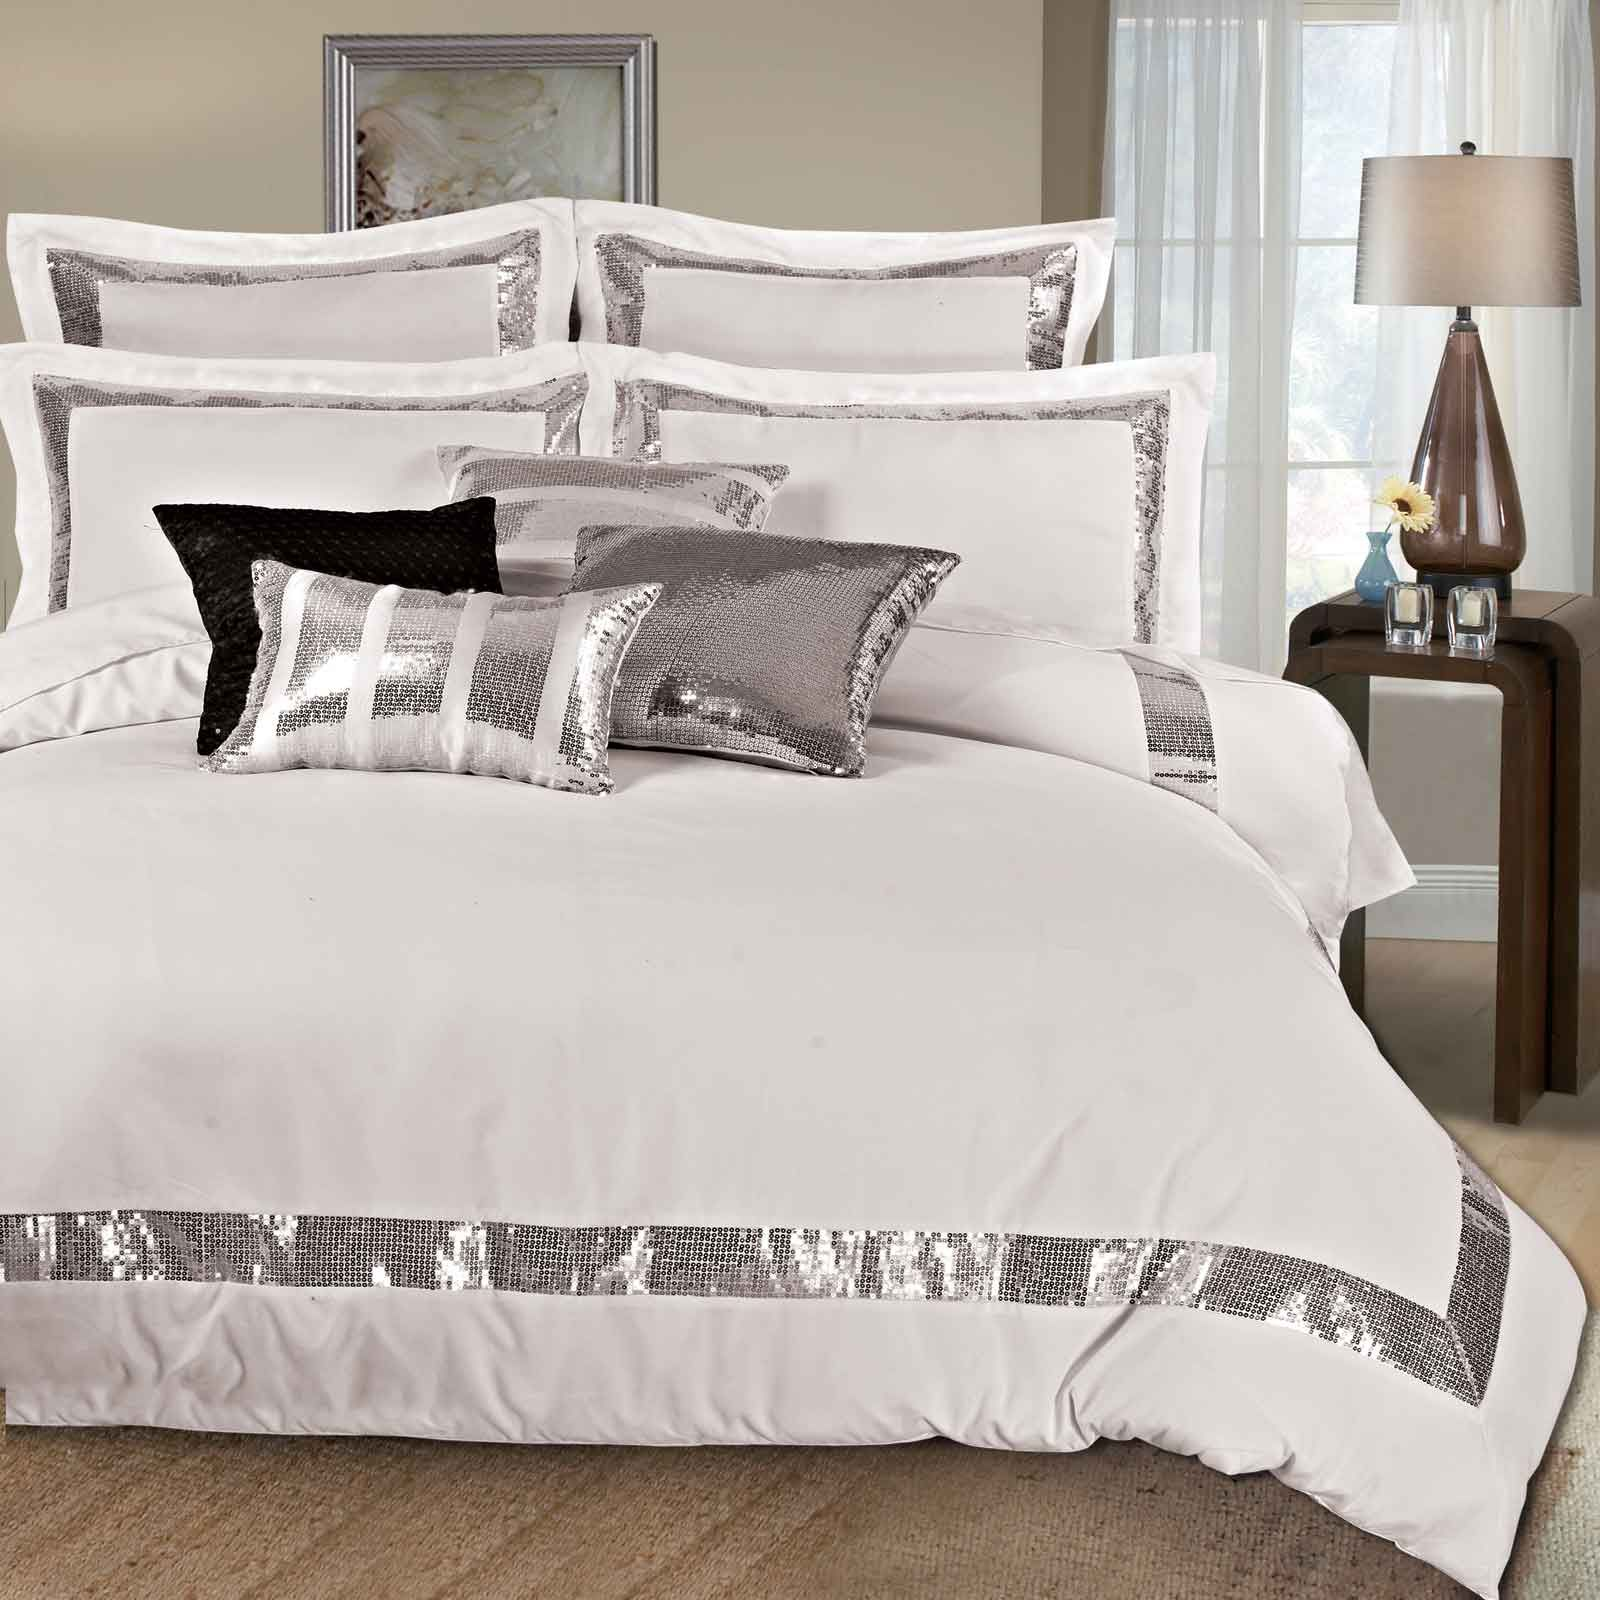 quilt cover set 3pcs bed linen set bedding set bed linen sets quilt